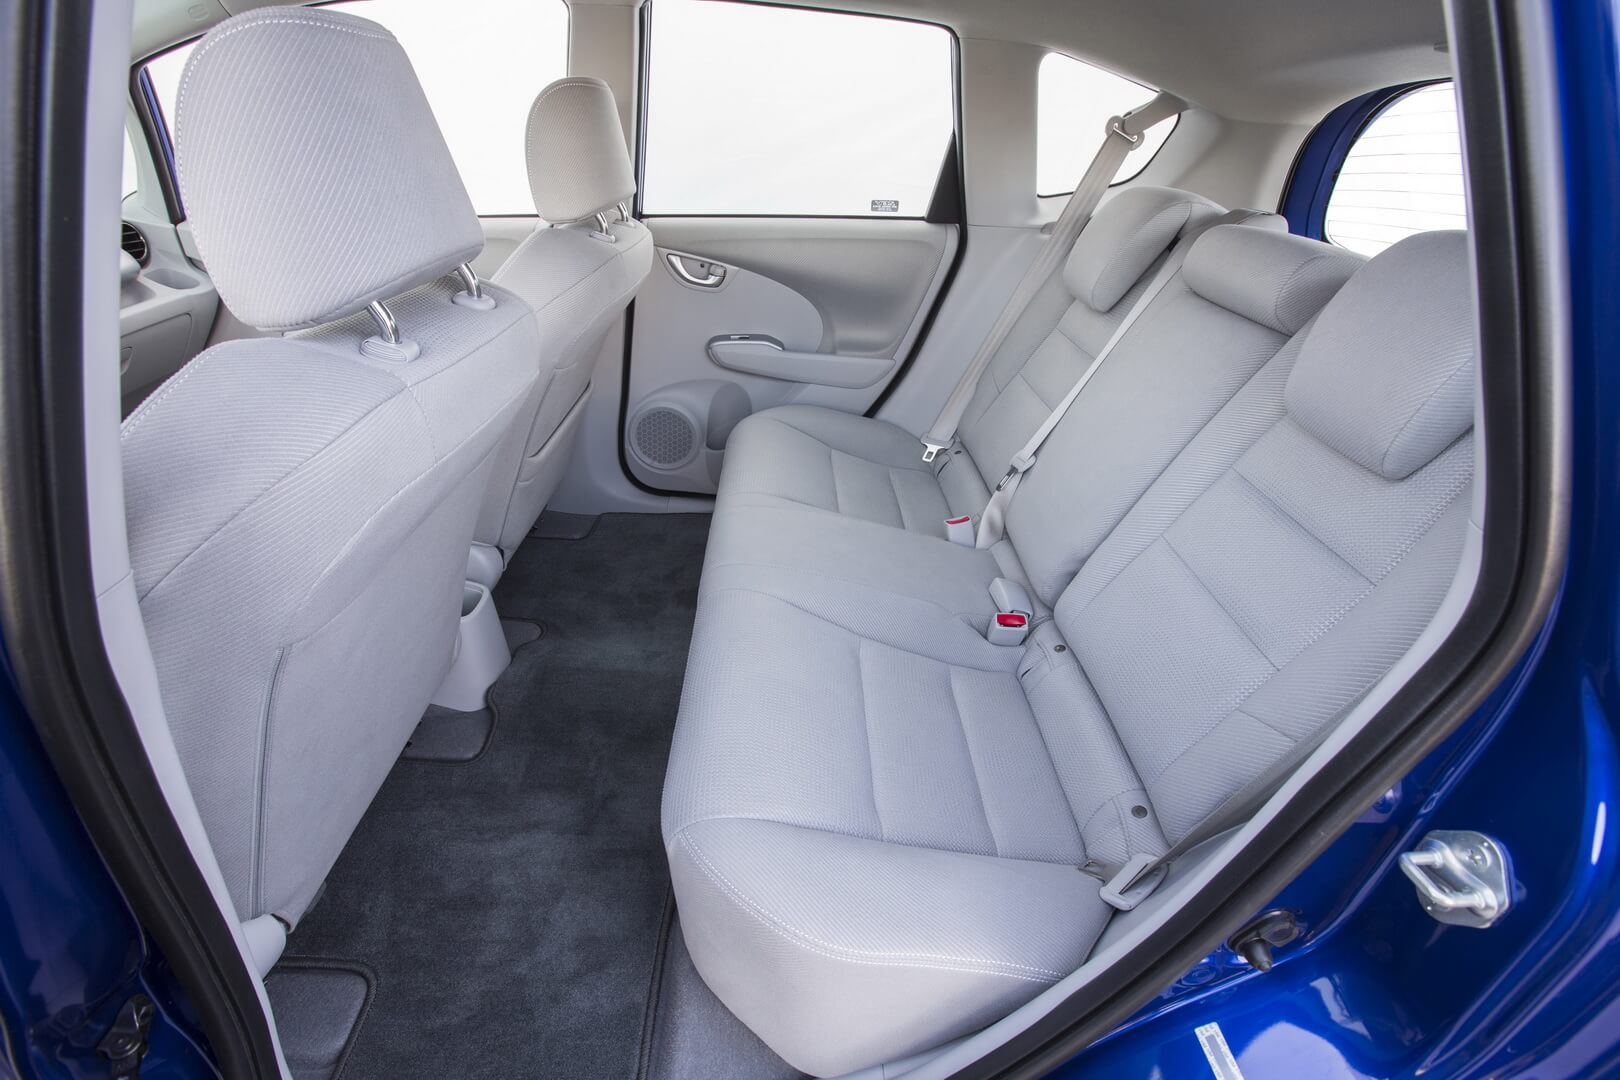 Honda Fit EV-interior-28